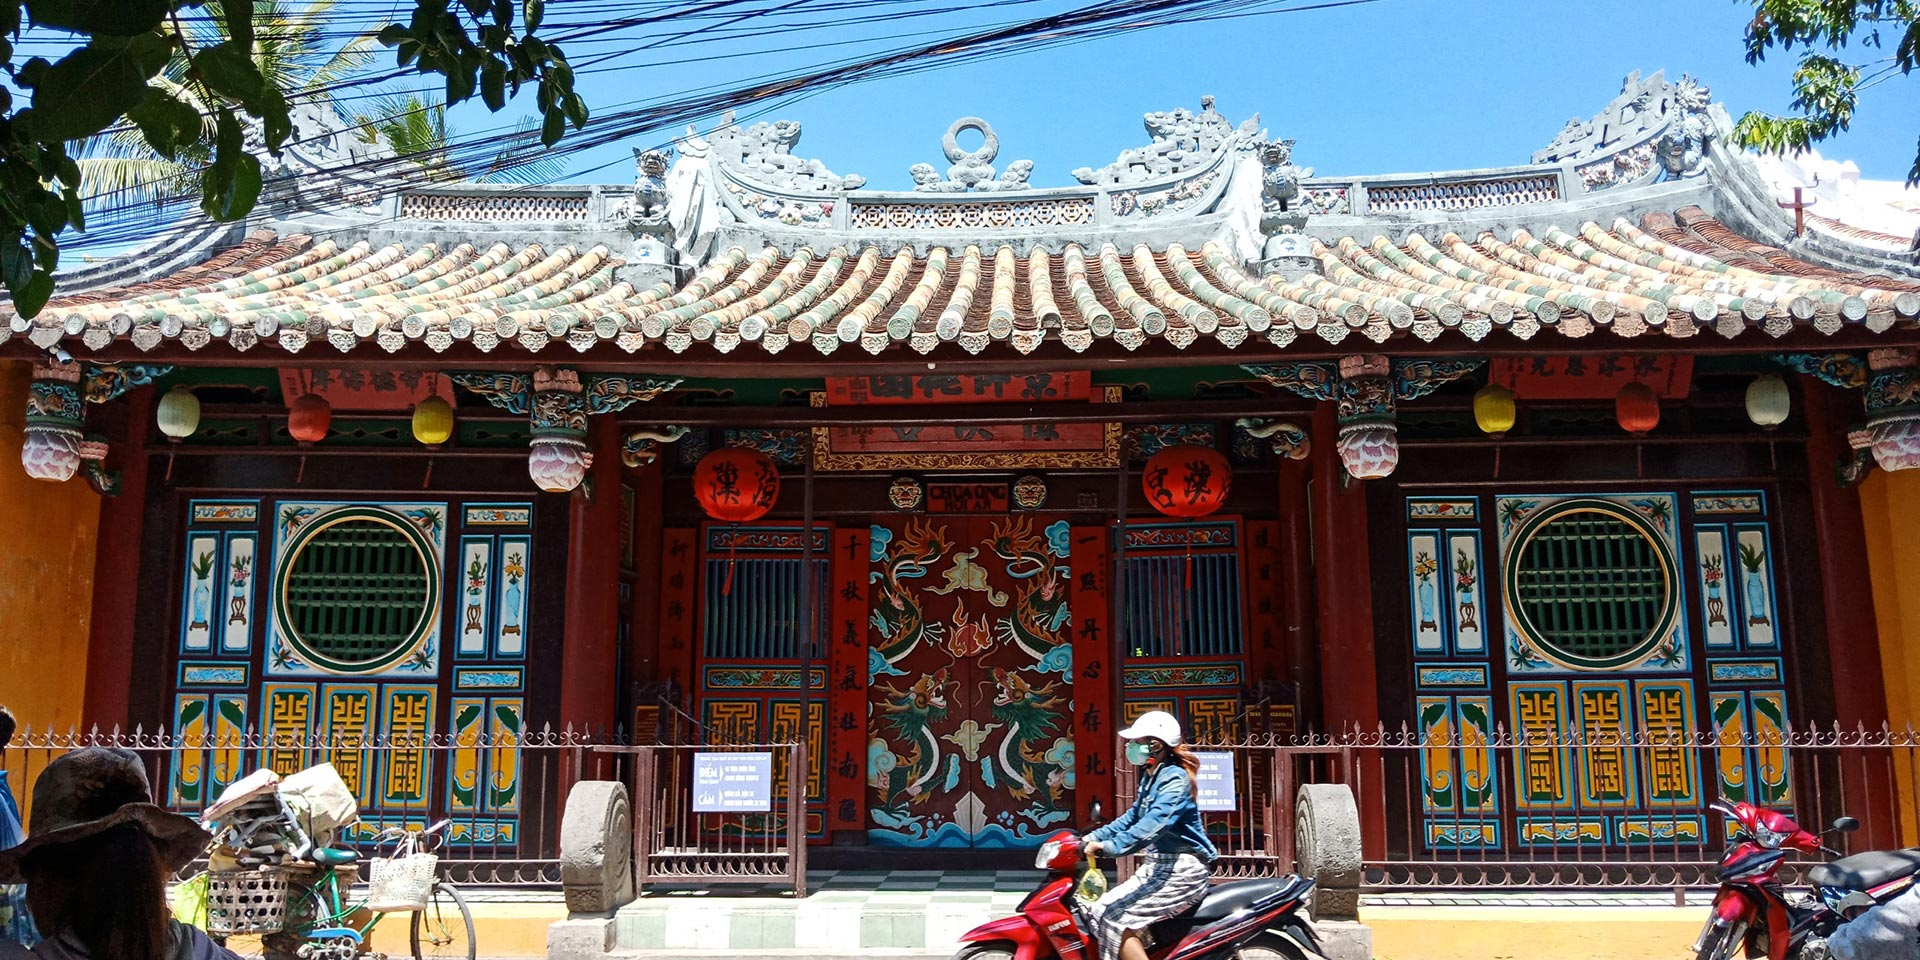 The facade of Chua Ong Pagoda